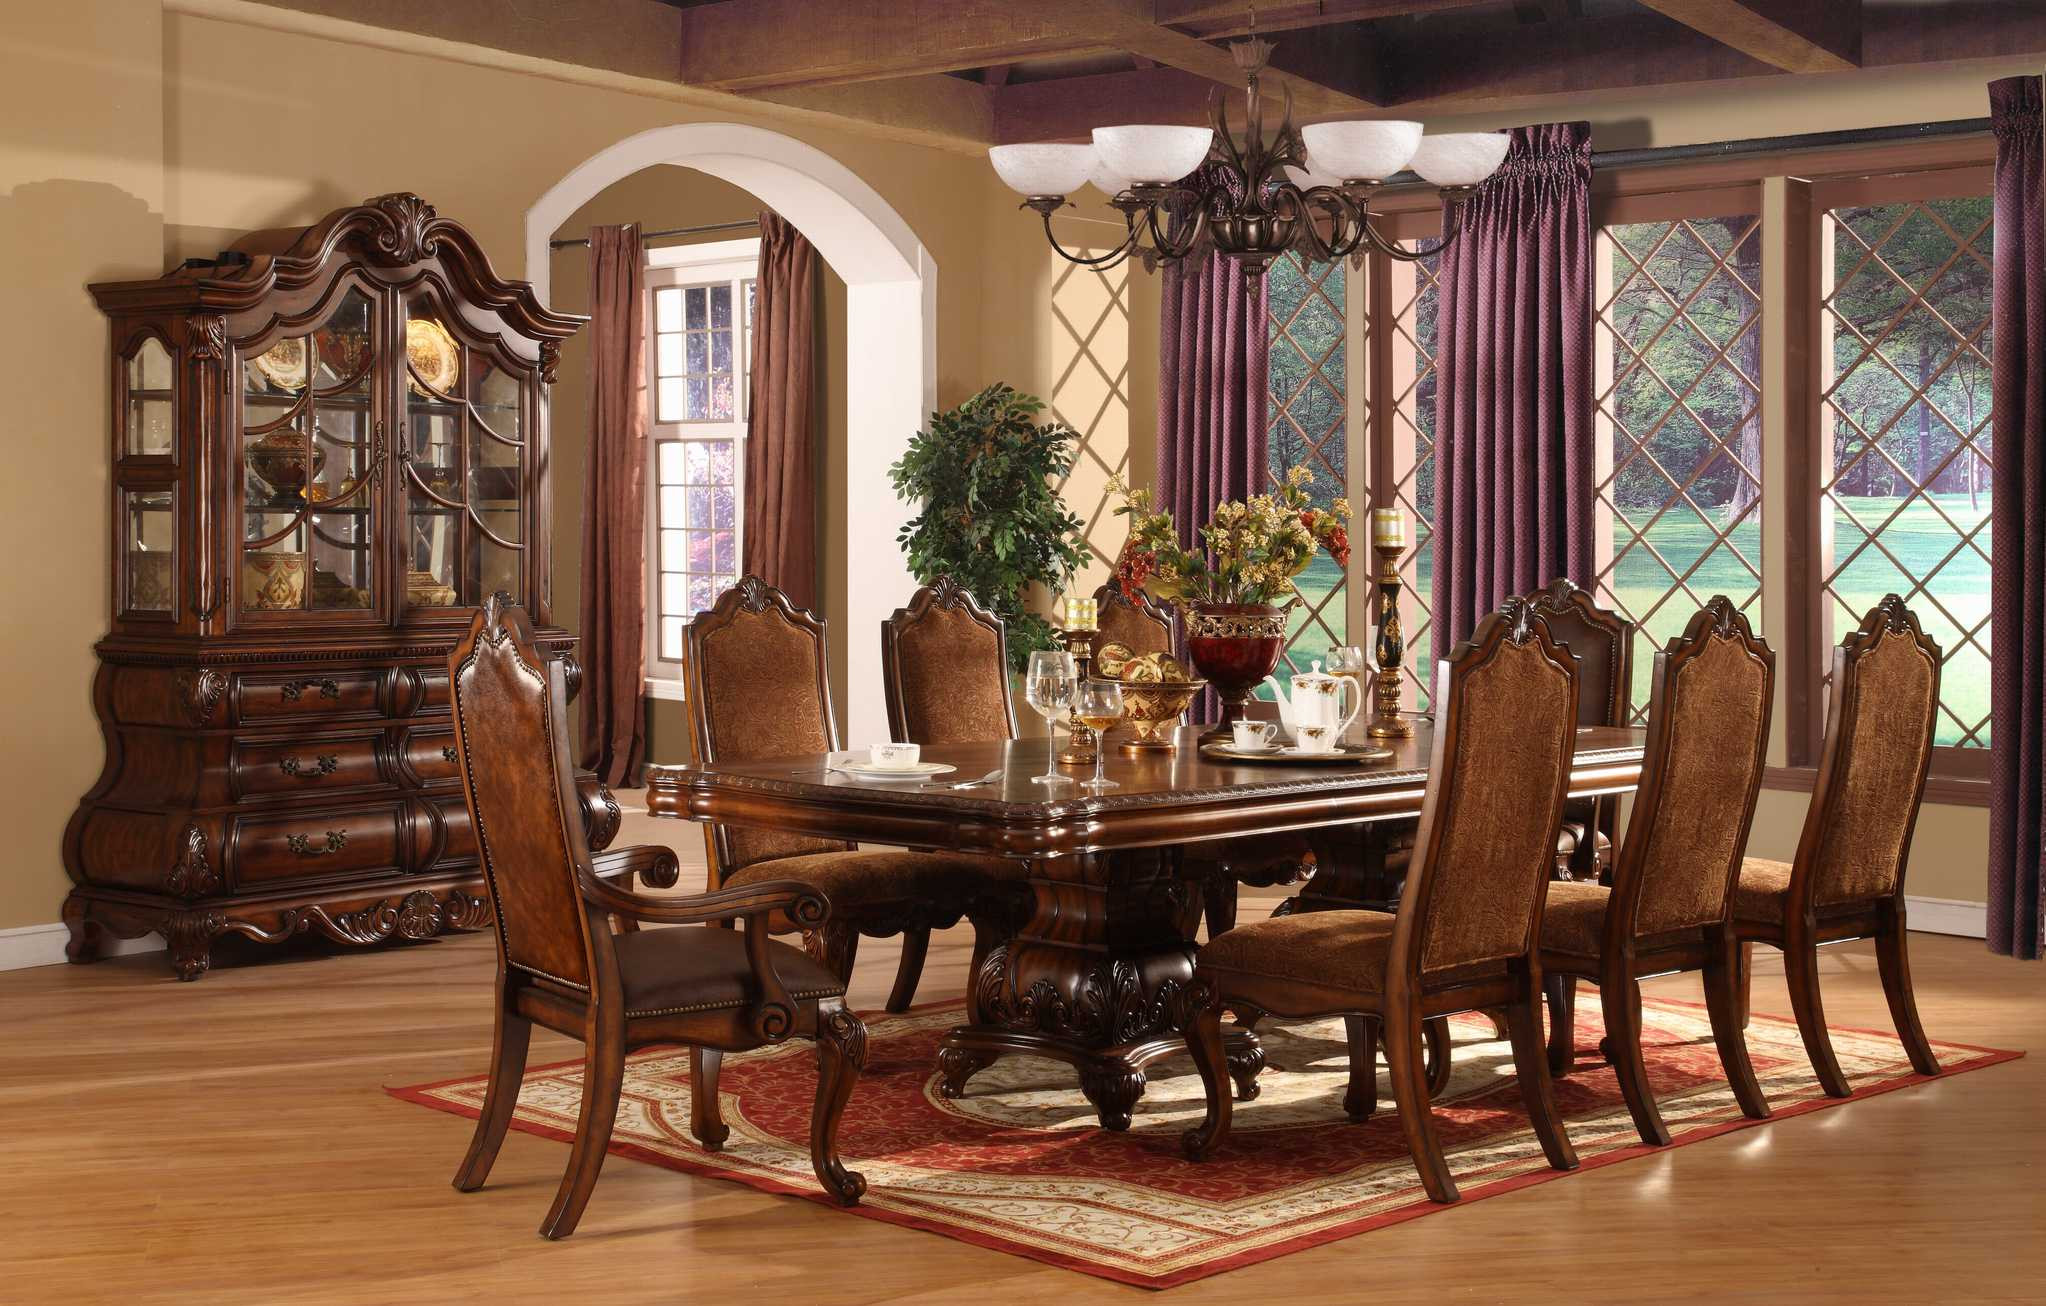 Best ideas about Formal Dining Rooms Furniture . Save or Pin Perfect Formal Dining Room Sets for 8 Now.